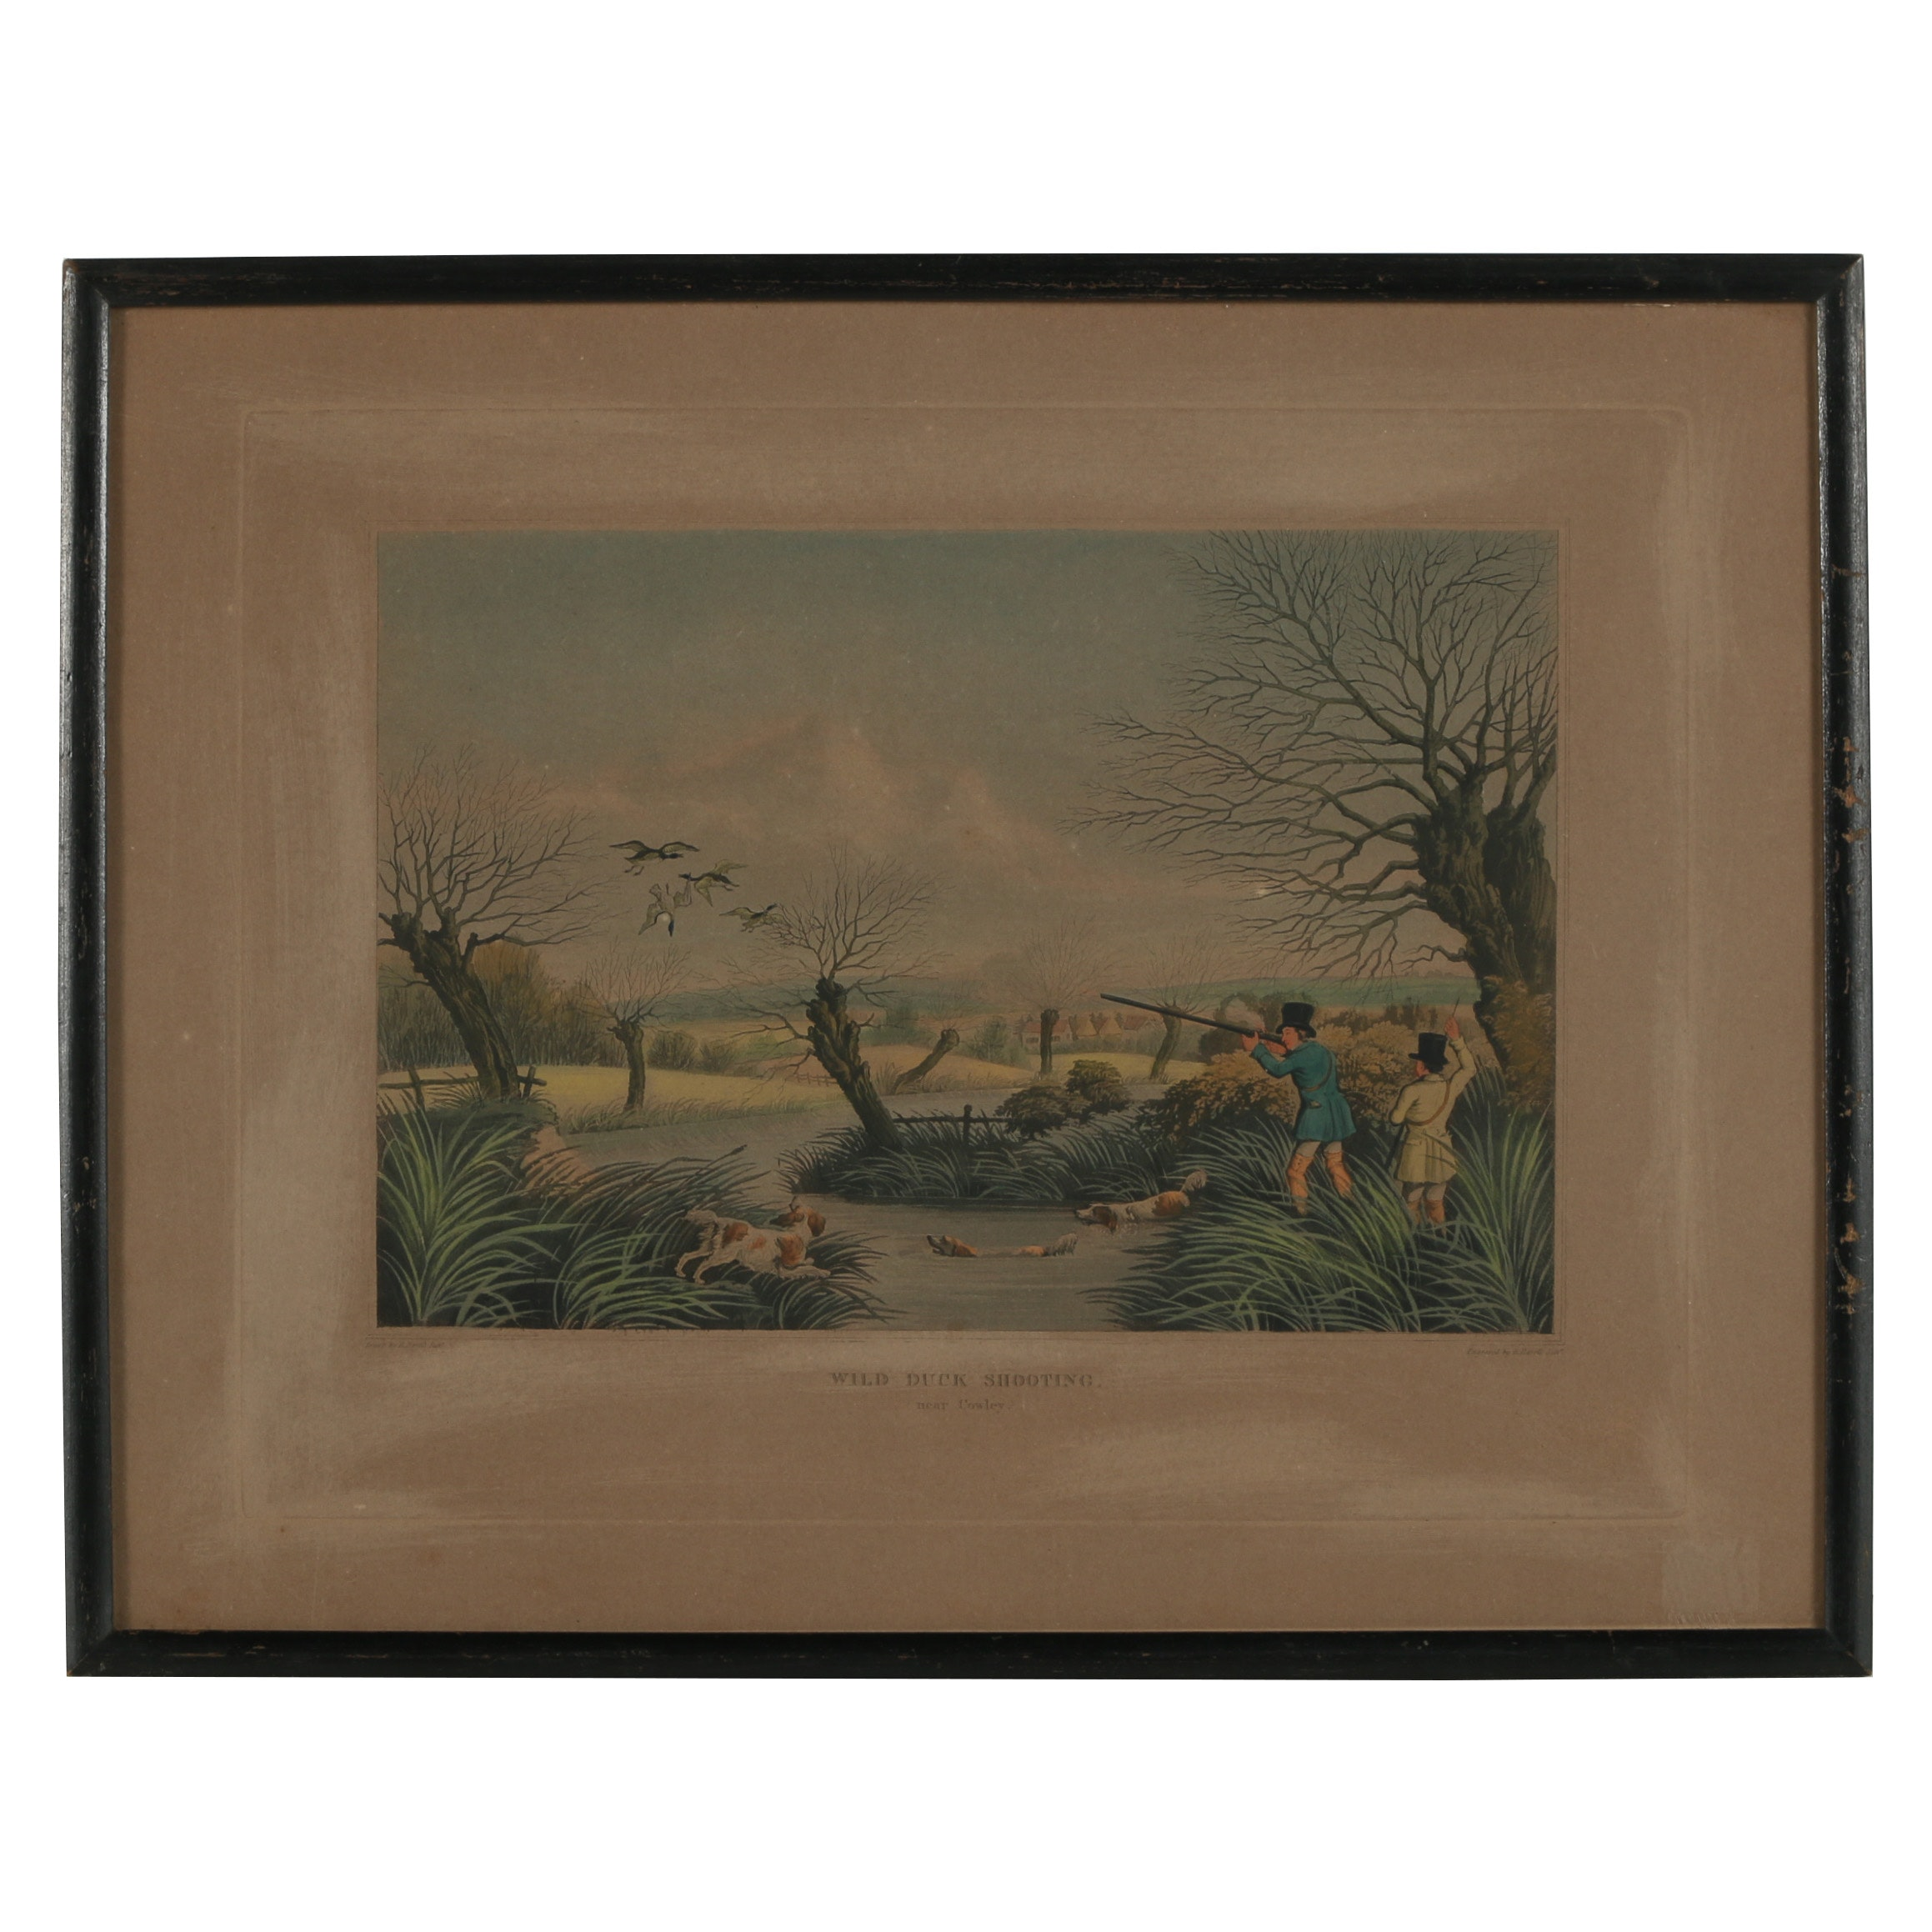 Hand-Colored Etching with Aquatint after Robert Havell Jr.